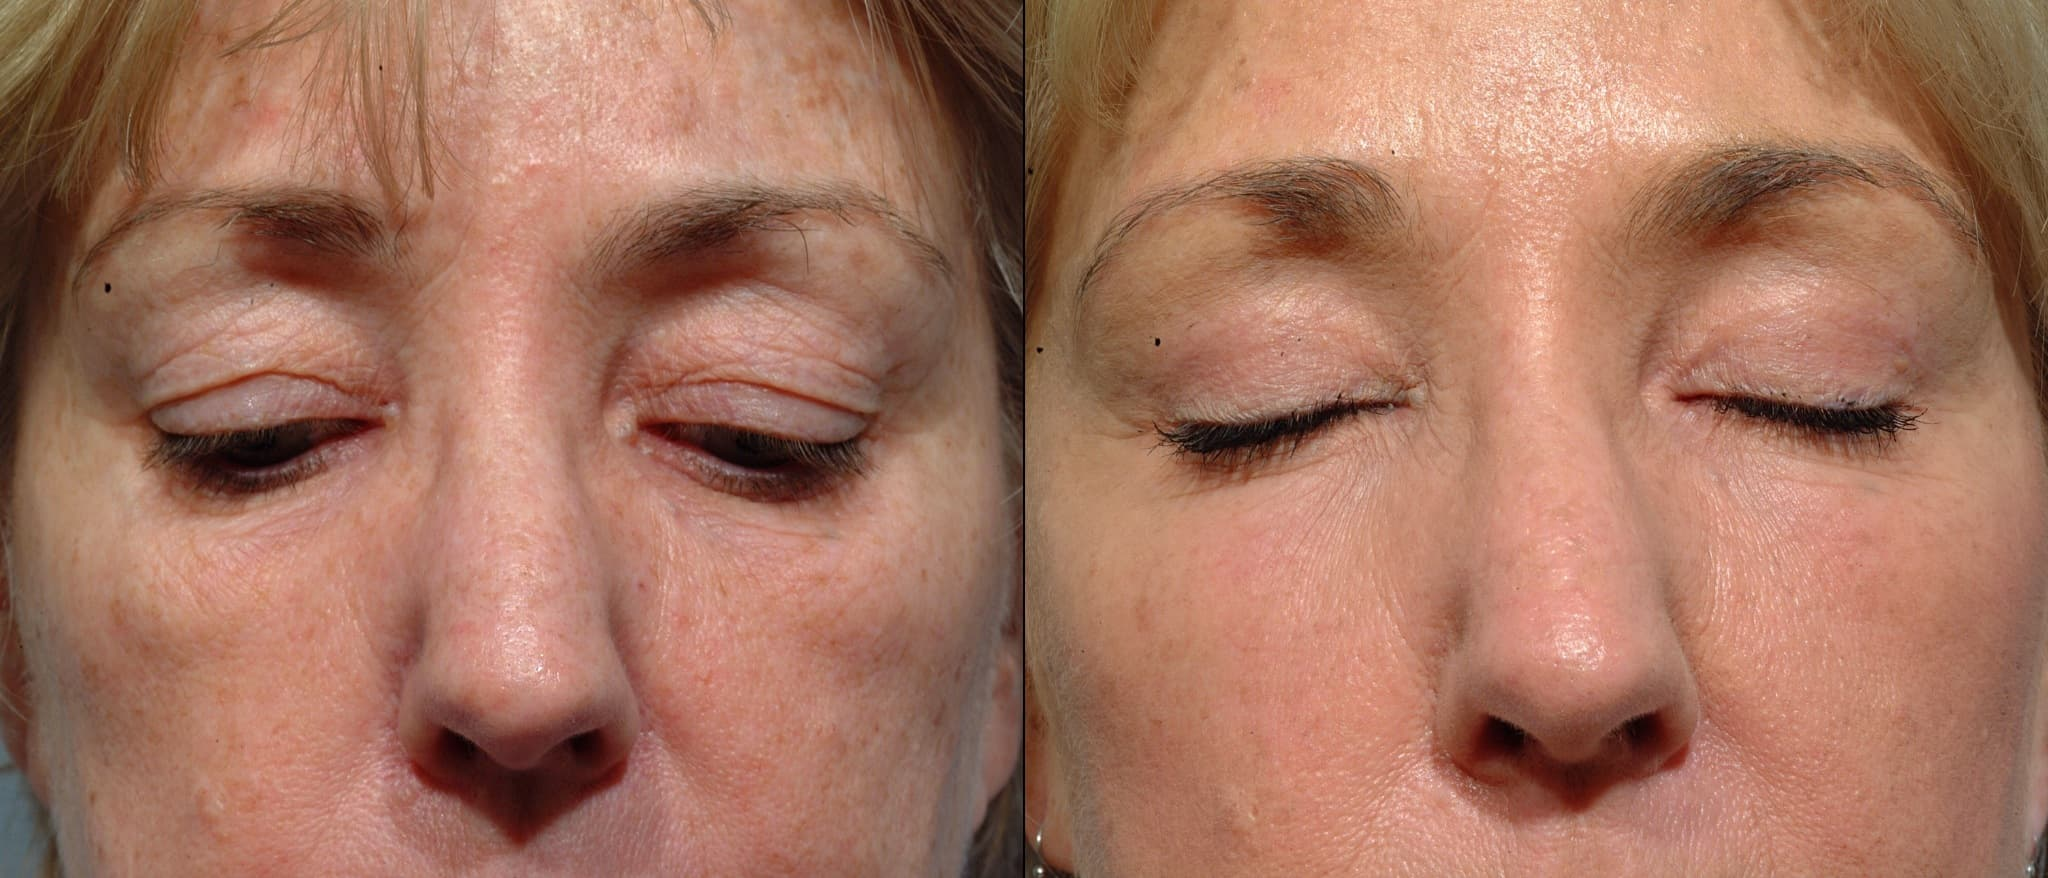 Upper Eye Lid Before And After Plastic Surgery Pics 1